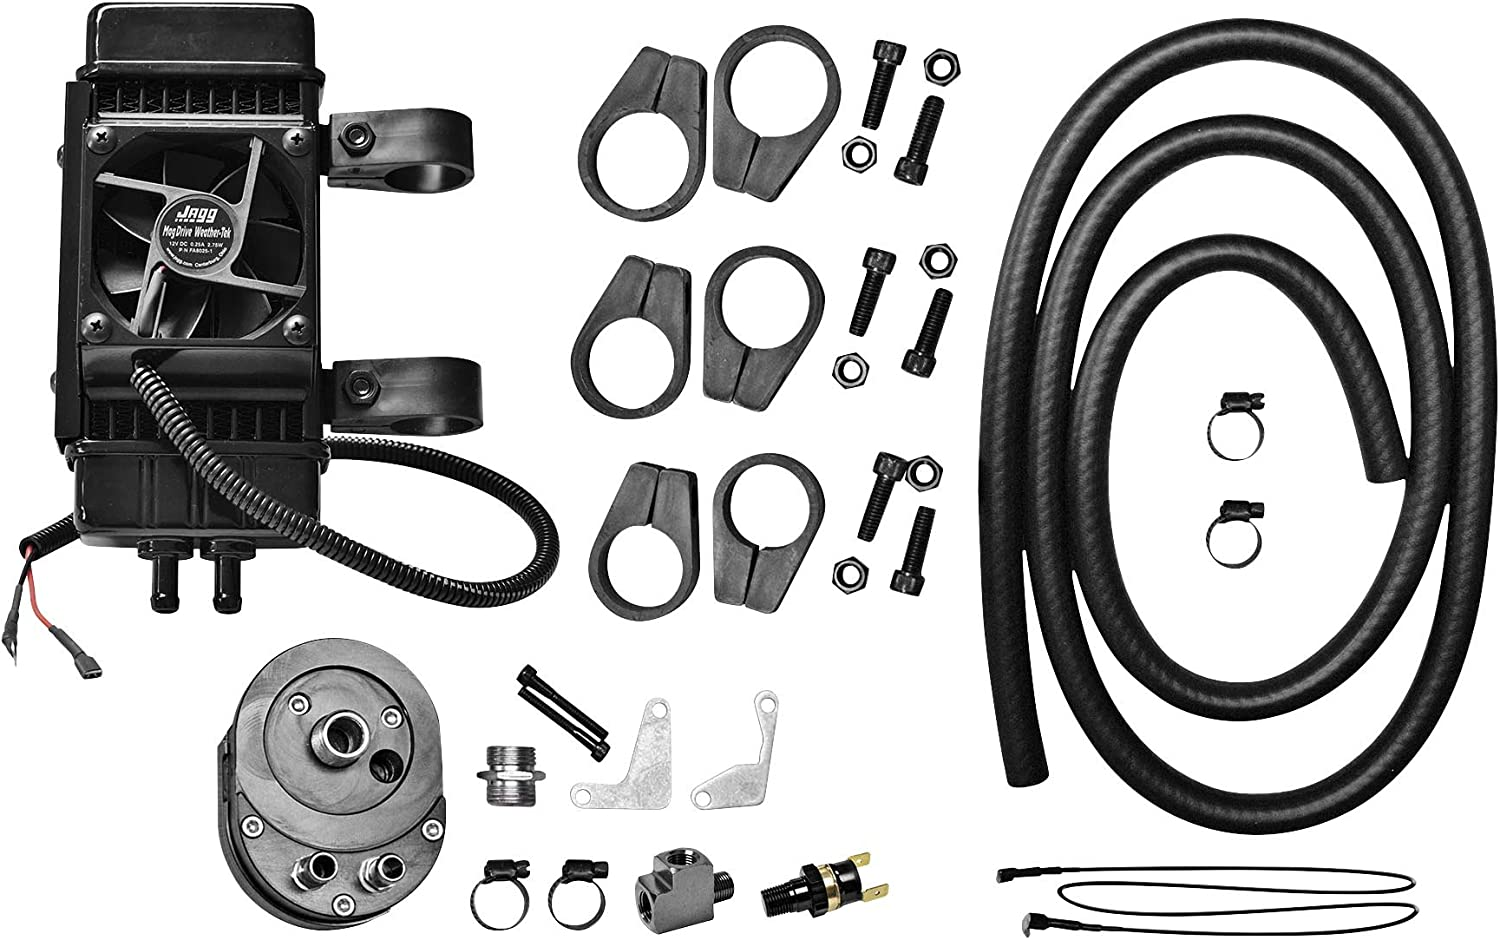 Jagg Fan-Assisted Oil Cooler Kits 751-FP2600